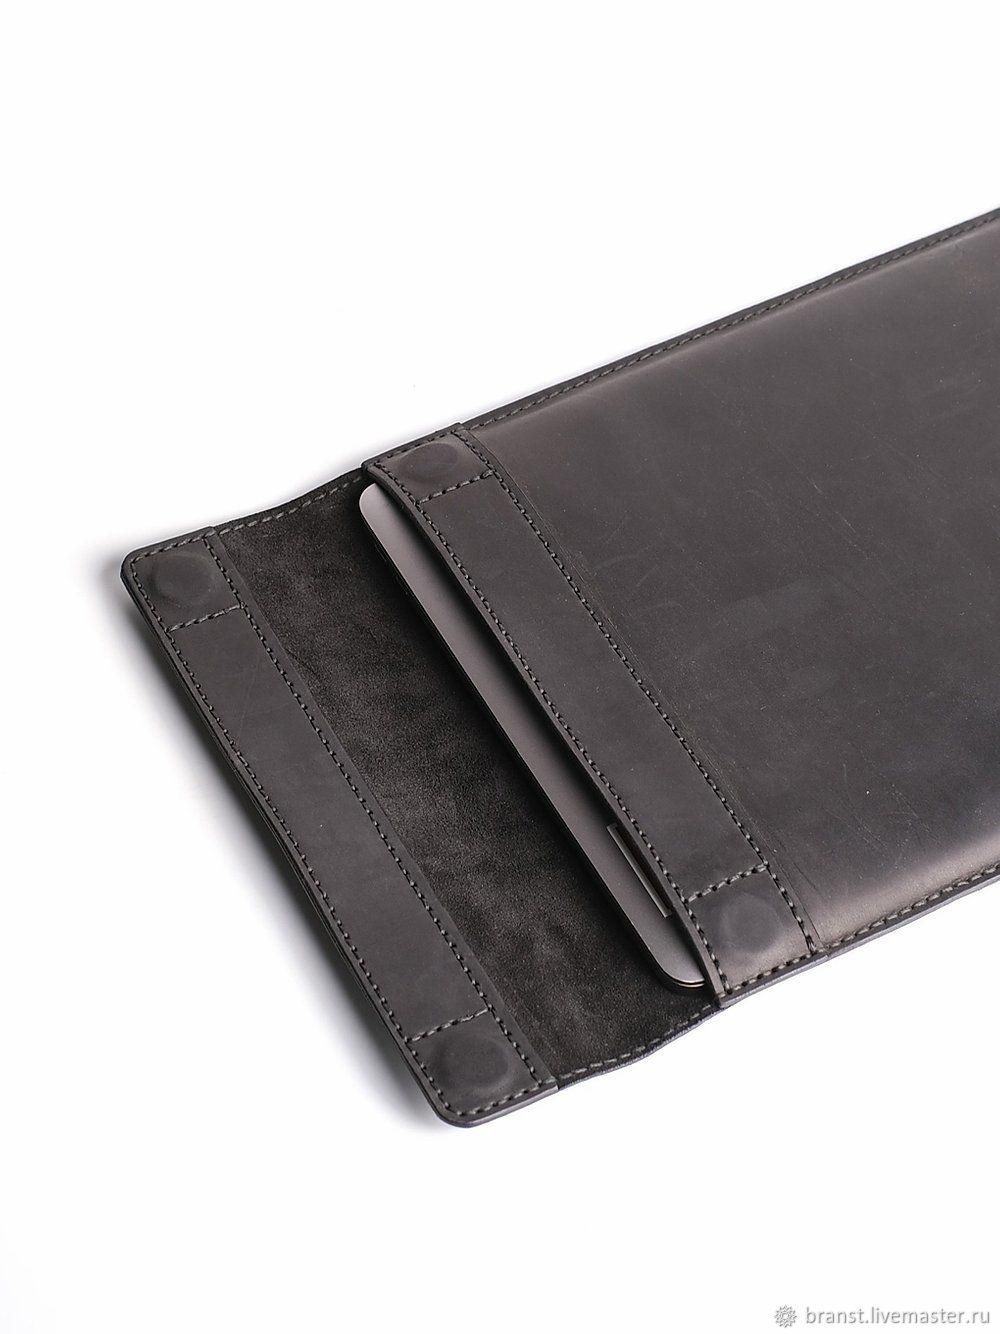 Kuga leather case with flap for laptop, Case, Moscow,  Фото №1